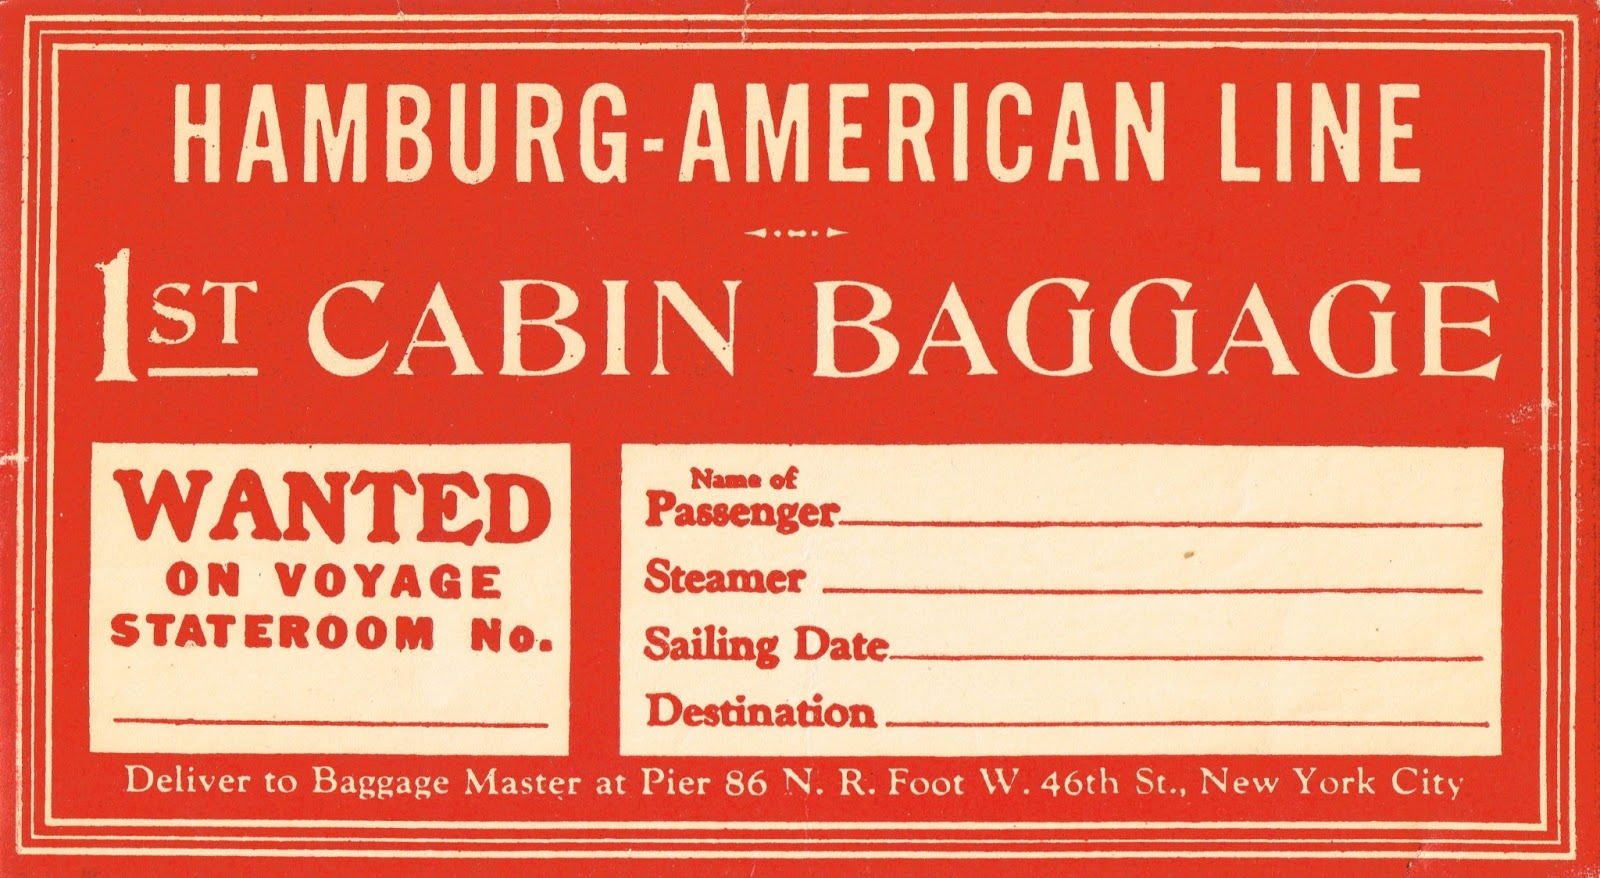 photograph relating to Free Printable Luggage Tags named Antique Graphics Wednesday - Basic Baggage Tags Knick of